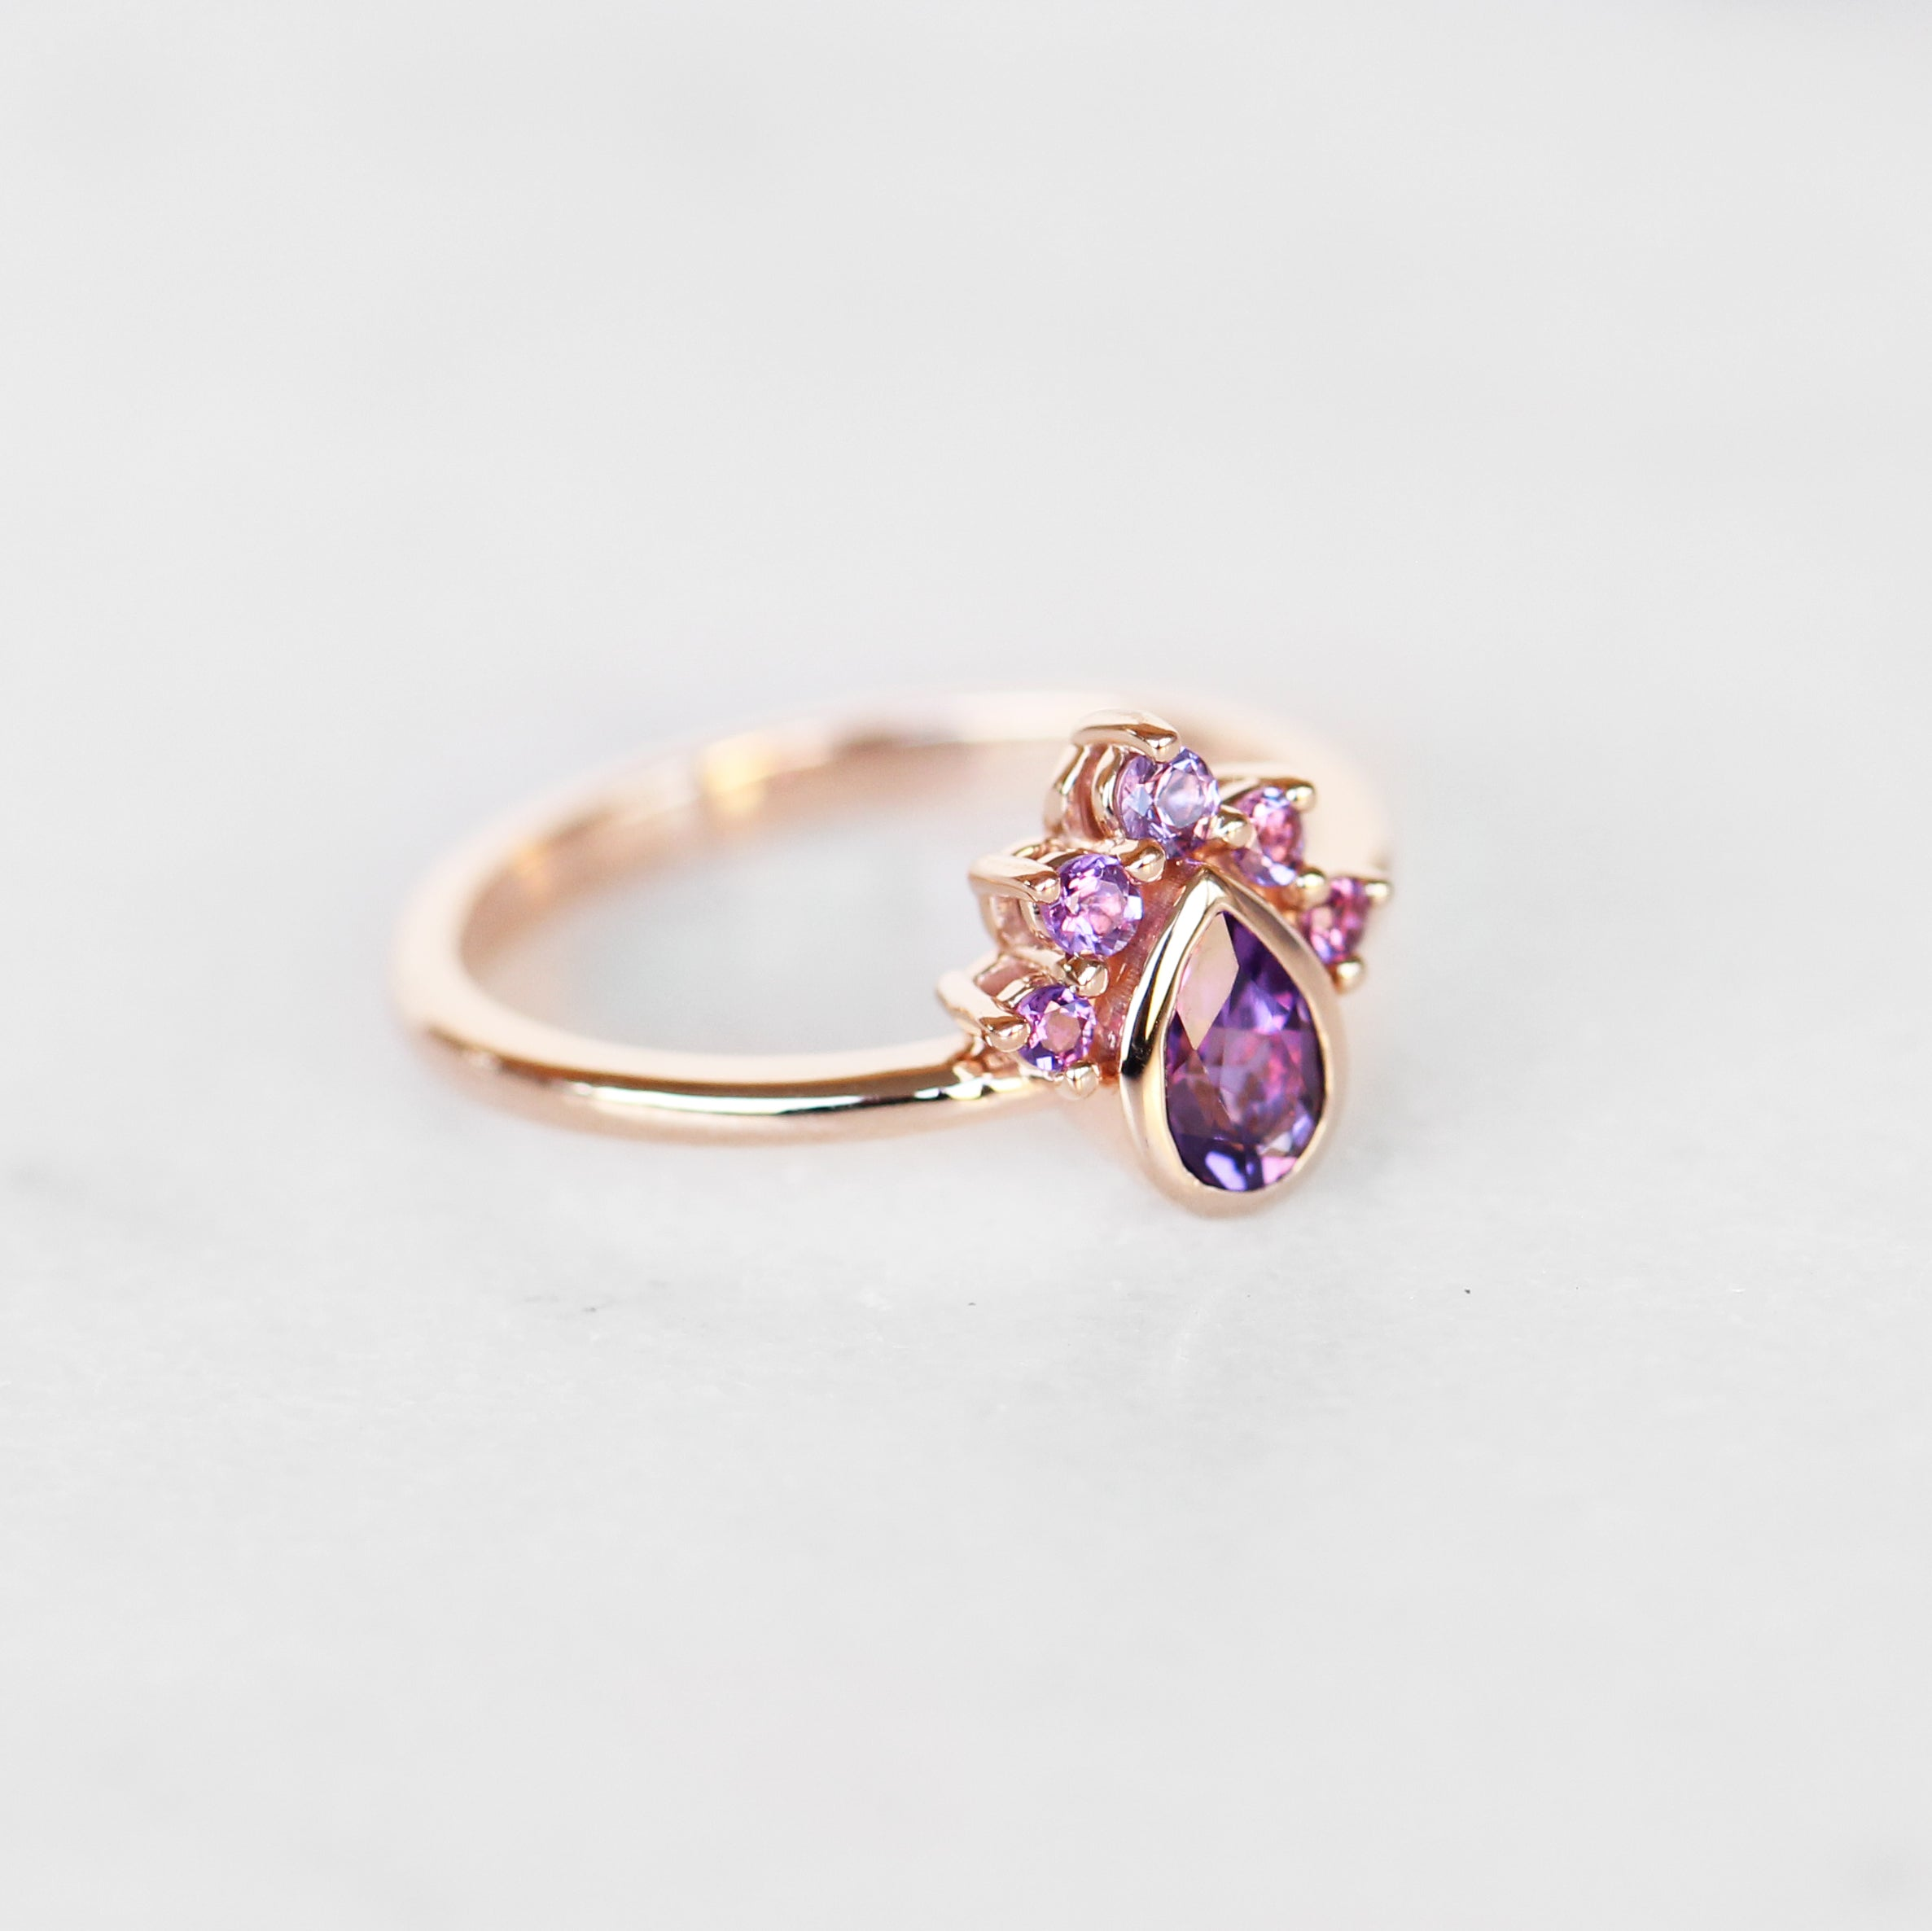 Ashlyn Amethyst Ring in 14k gold of your choice - Celestial Diamonds ® by Midwinter Co.